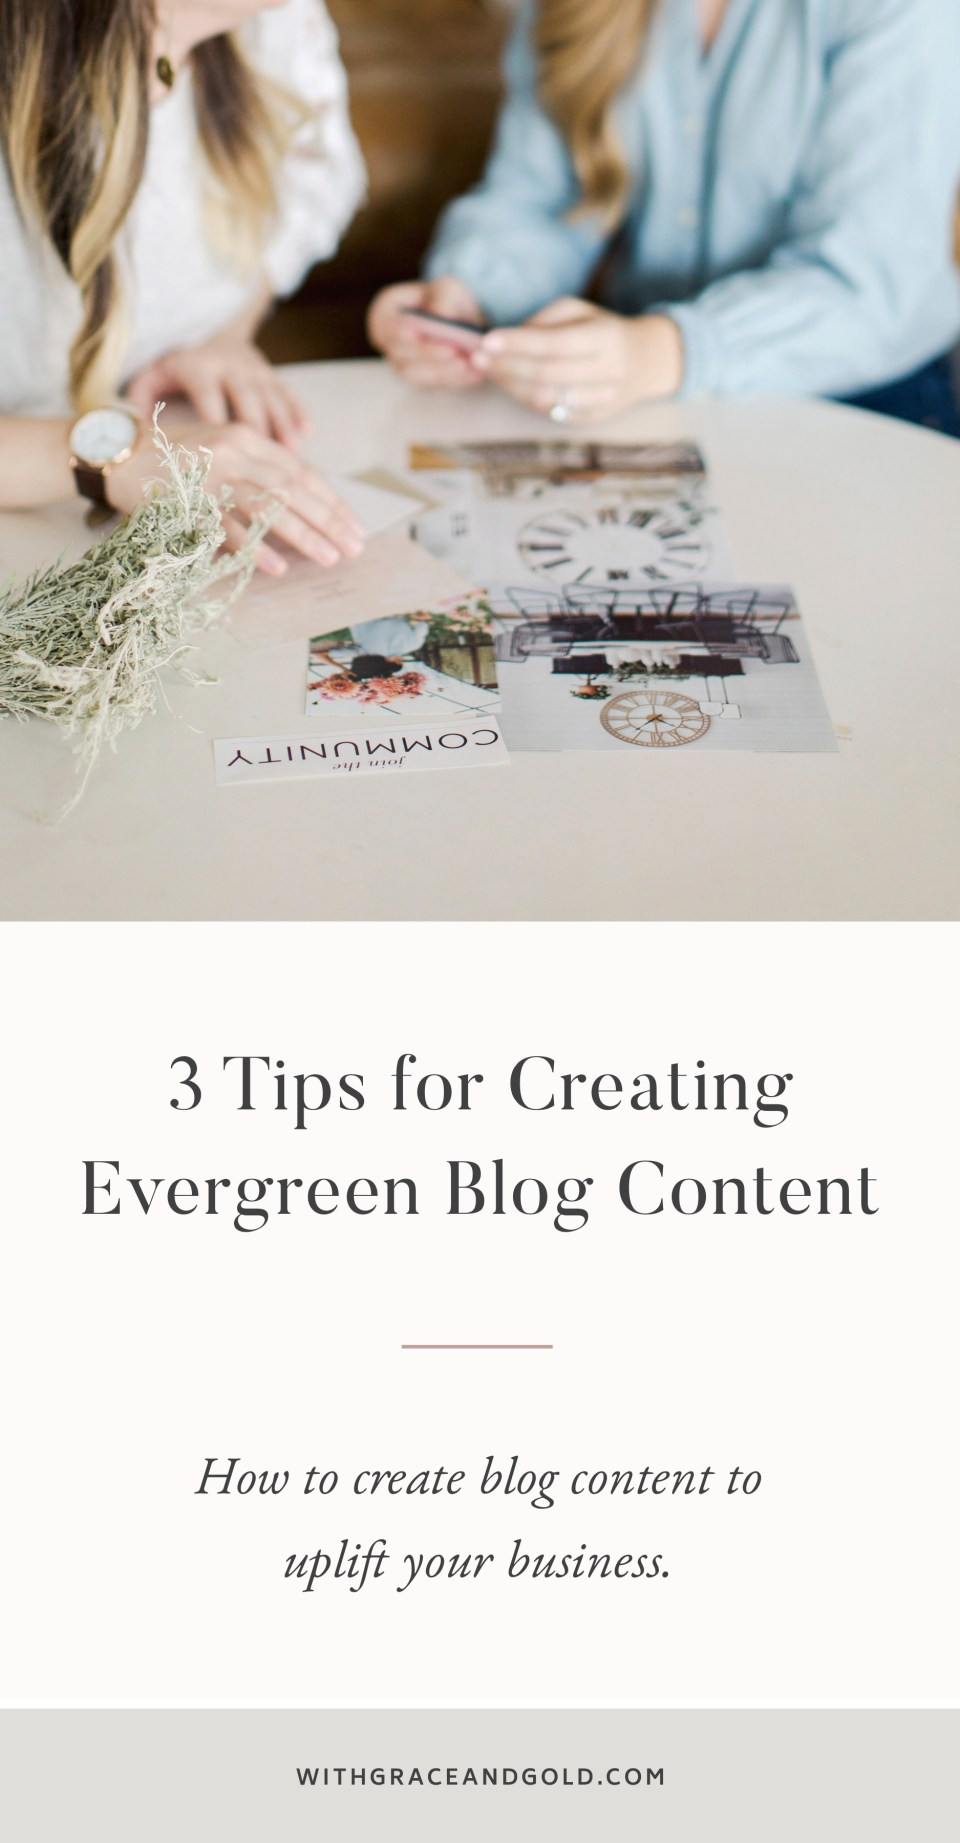 3 Tips for Creating Evergreen Blog Content